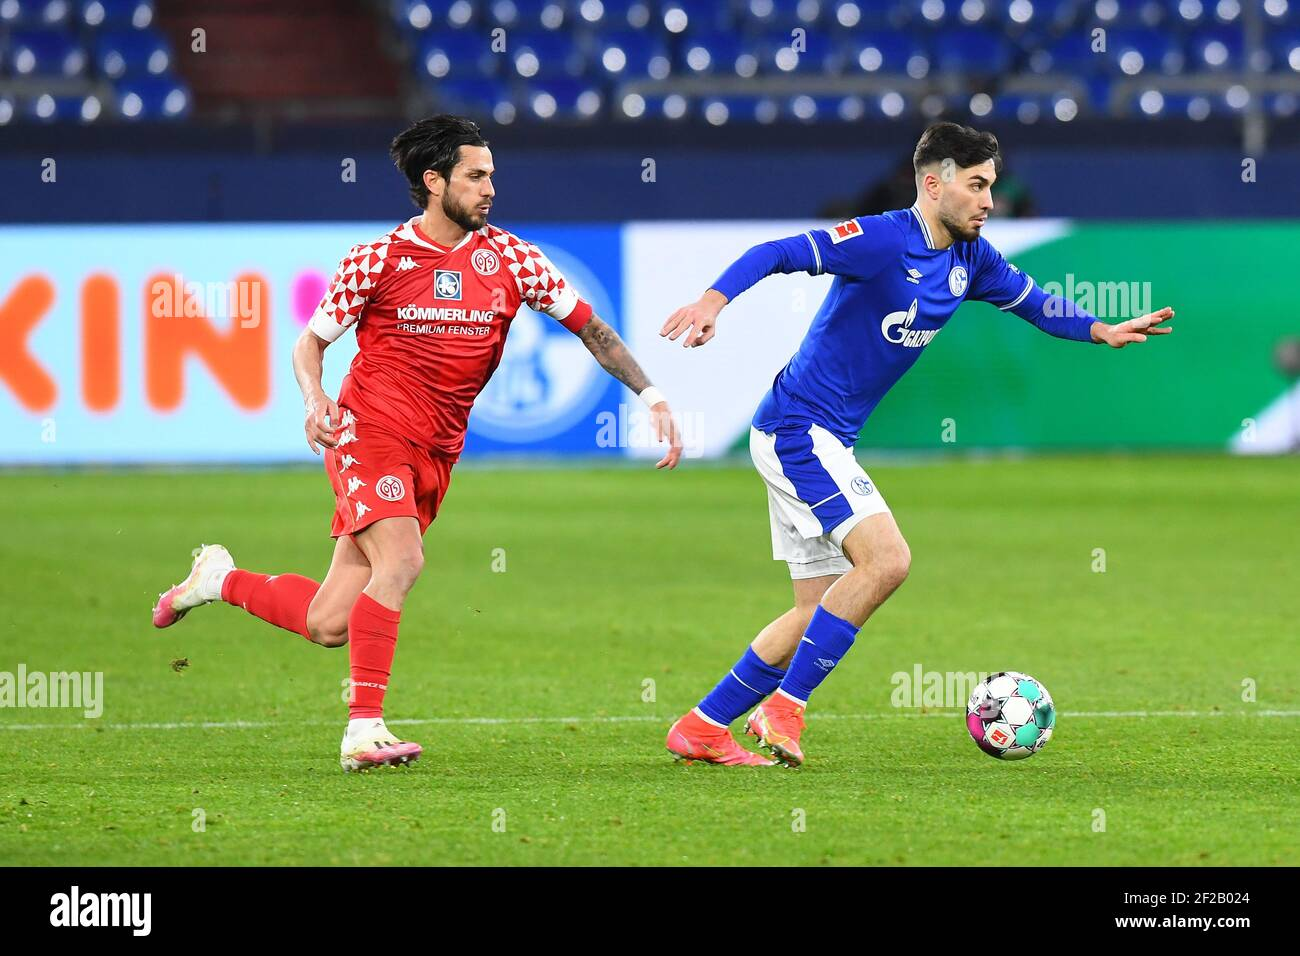 Suat Serdar High Resolution Stock Photography and Images - Alamy